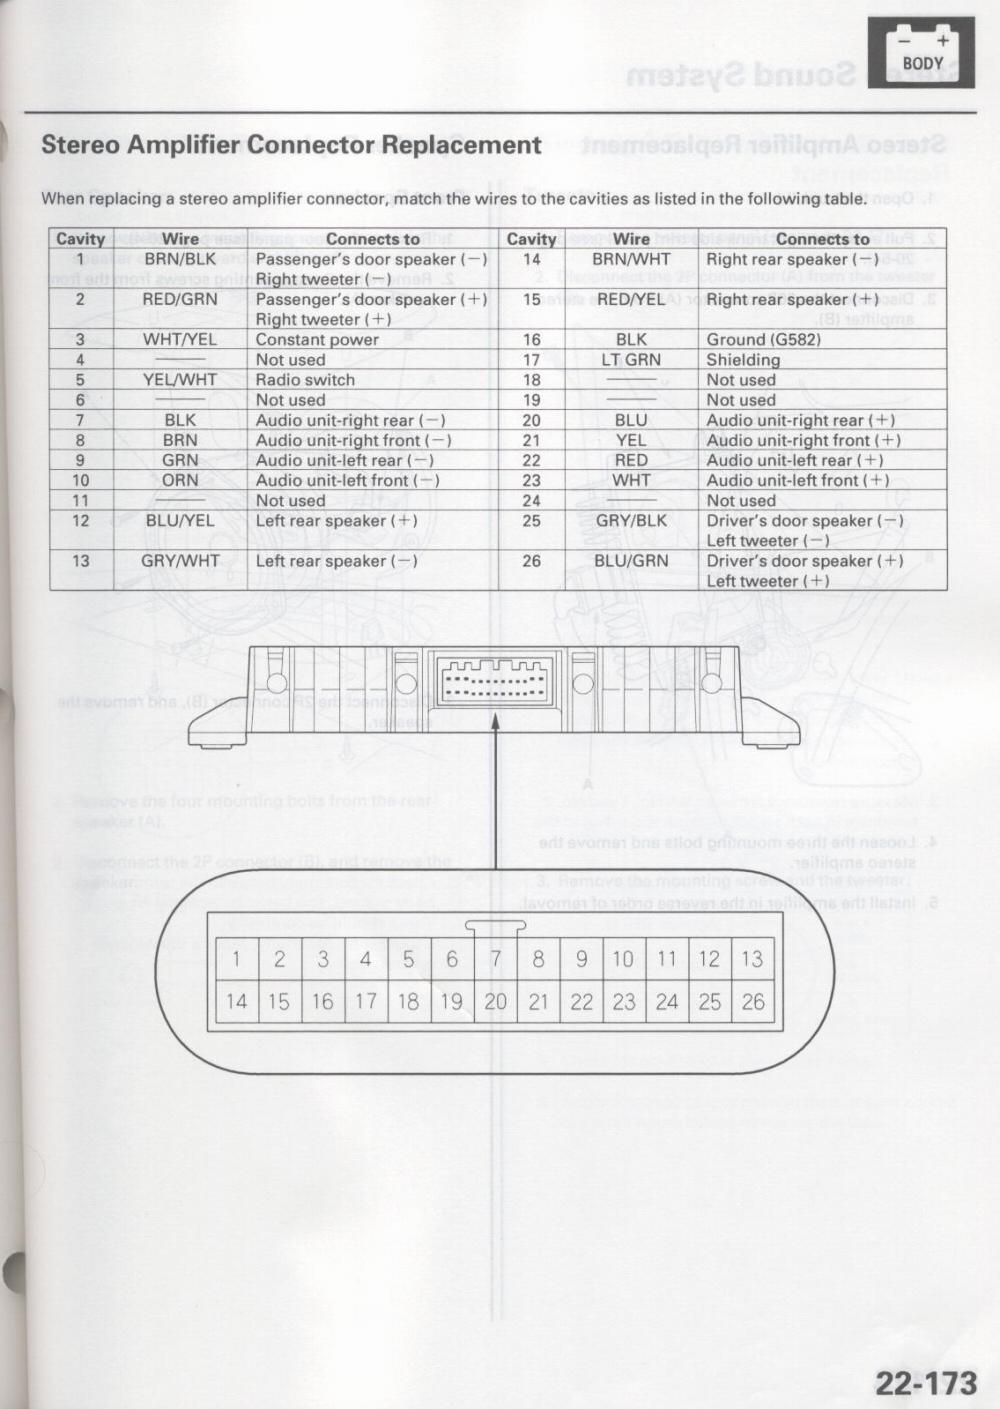 Acura 2002 TL car stereo amplifier wiring diagram harness car radio stereo audio wiring diagram autoradio connector wire Acura MDX Rear Knuckle at virtualis.co